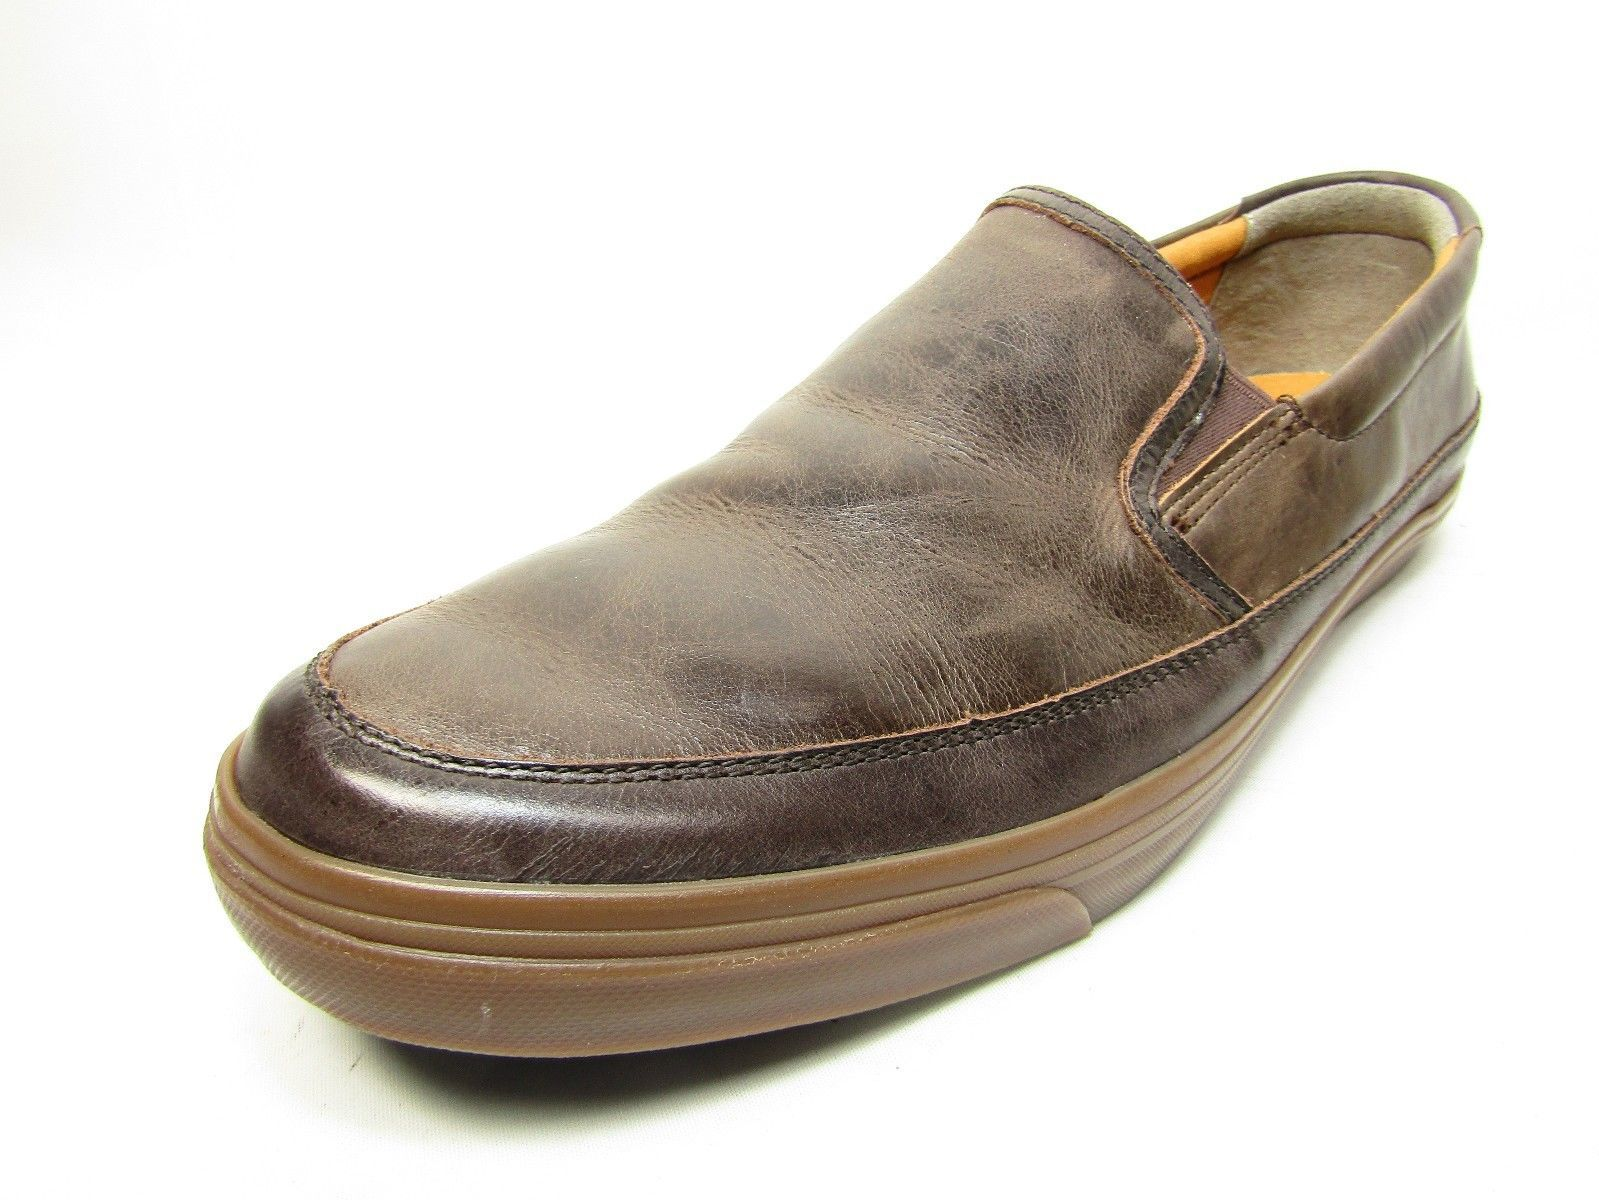 new style b6d8e c3afb Cole Haan Men s Ricta Slip On Shoes Color Dark Roast Size 13M -  48.37